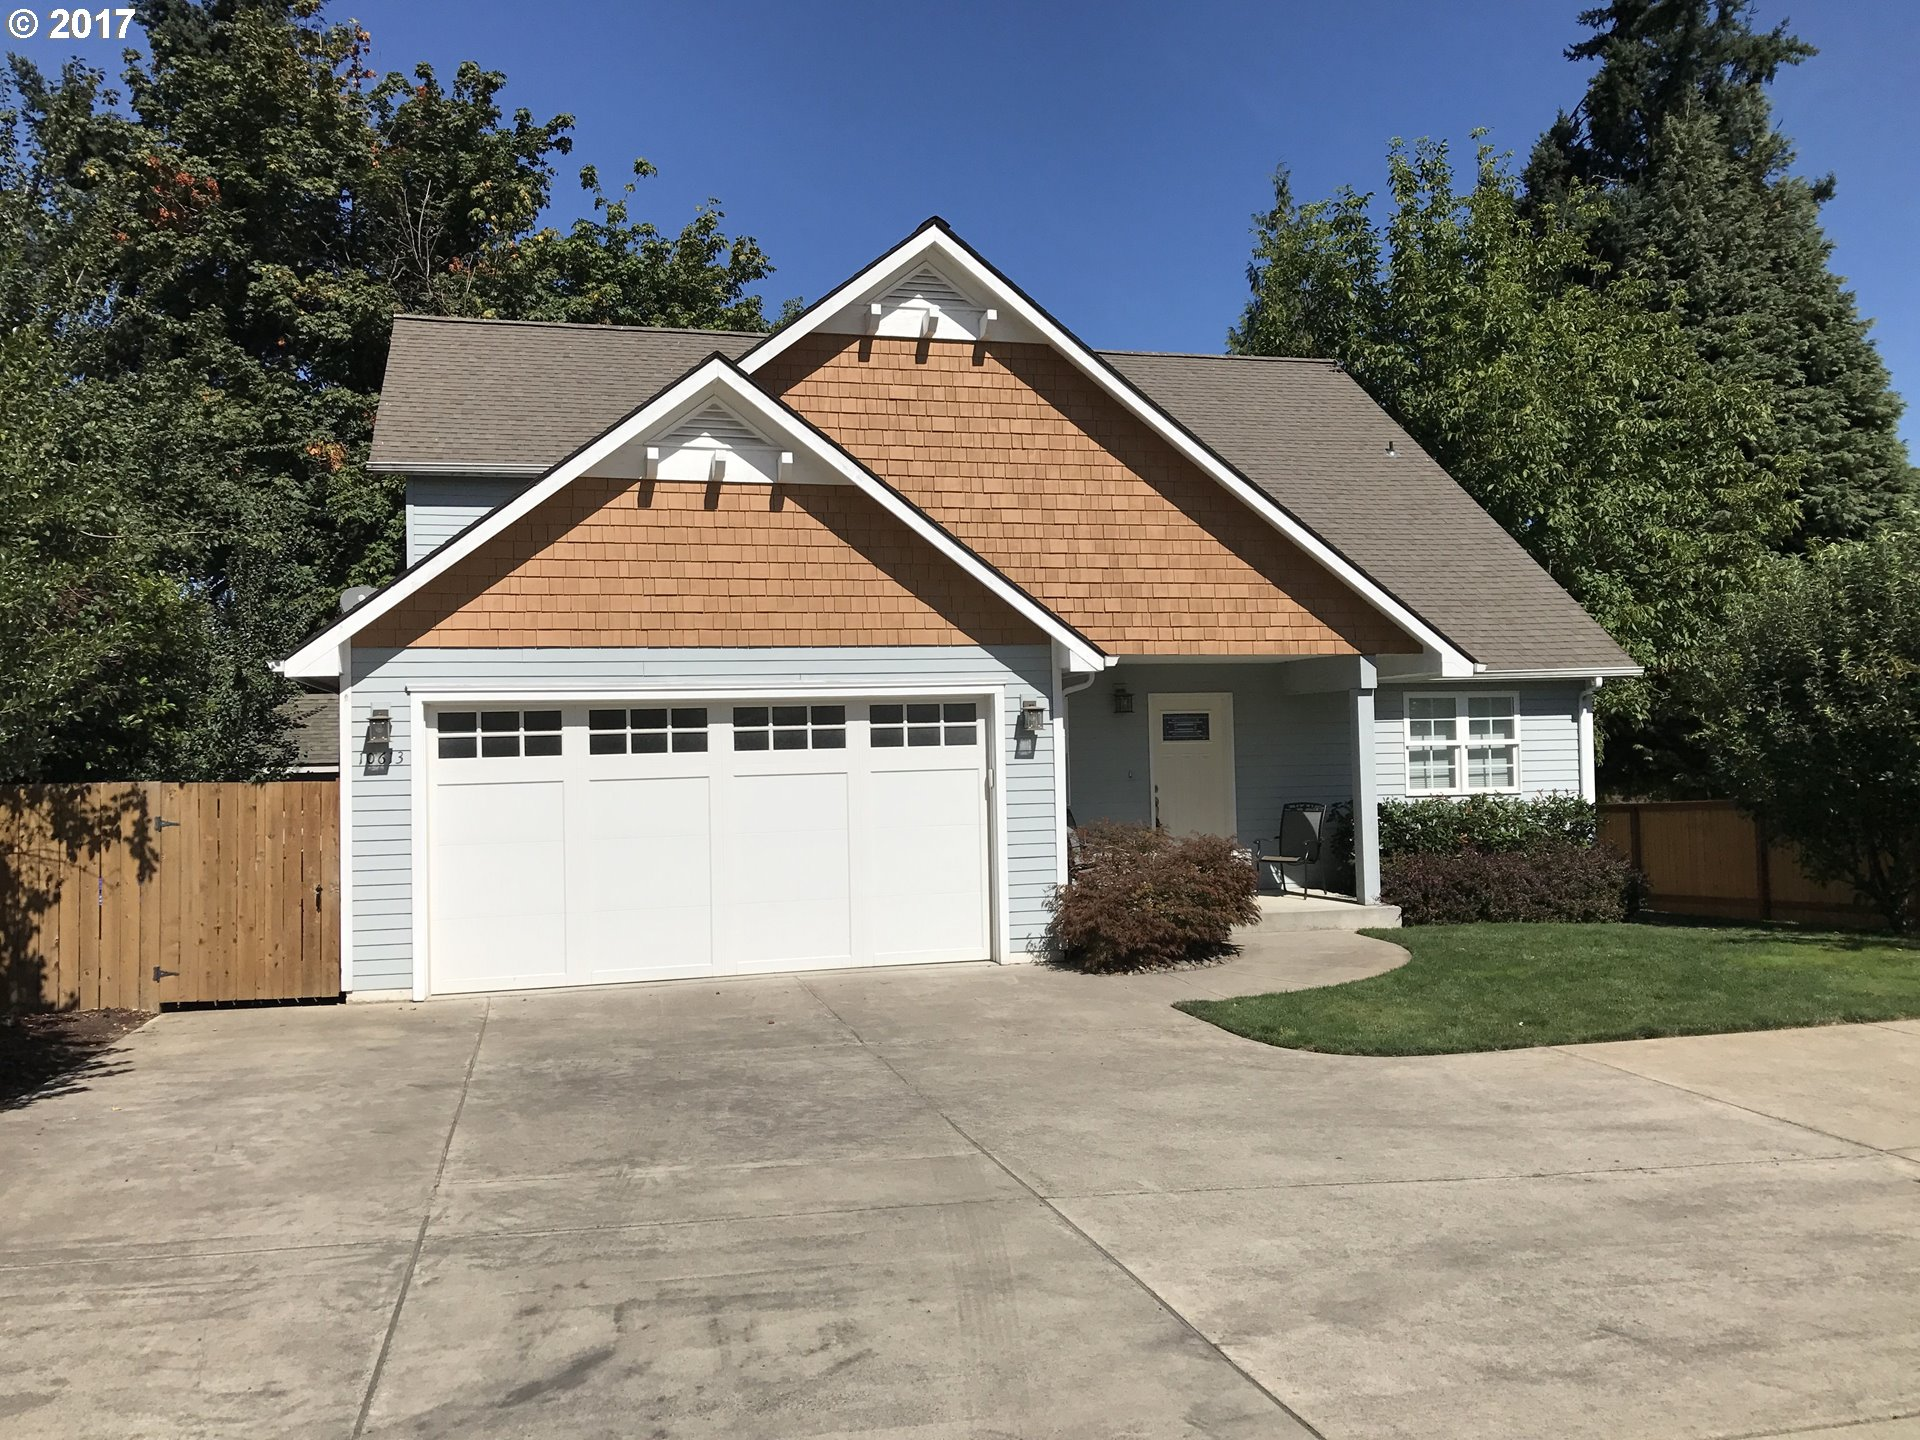 Builders own 2466sf home. Minutes to freeway/airport-Private setting. Complete living on main: Master & bath, walk in closet, high end kitchen cabinets, granite counter, walk in pantry, office/bdrm, 2 .5 bath, storage, vaulted ceiling. Upper: Bonus room, 2 Bdrms & bath. Upgrades: tankless water heater, A/C, plumbed-central vac, extra garage/shop, RV parking, fenced bkyd & more, Beautiful-come see!